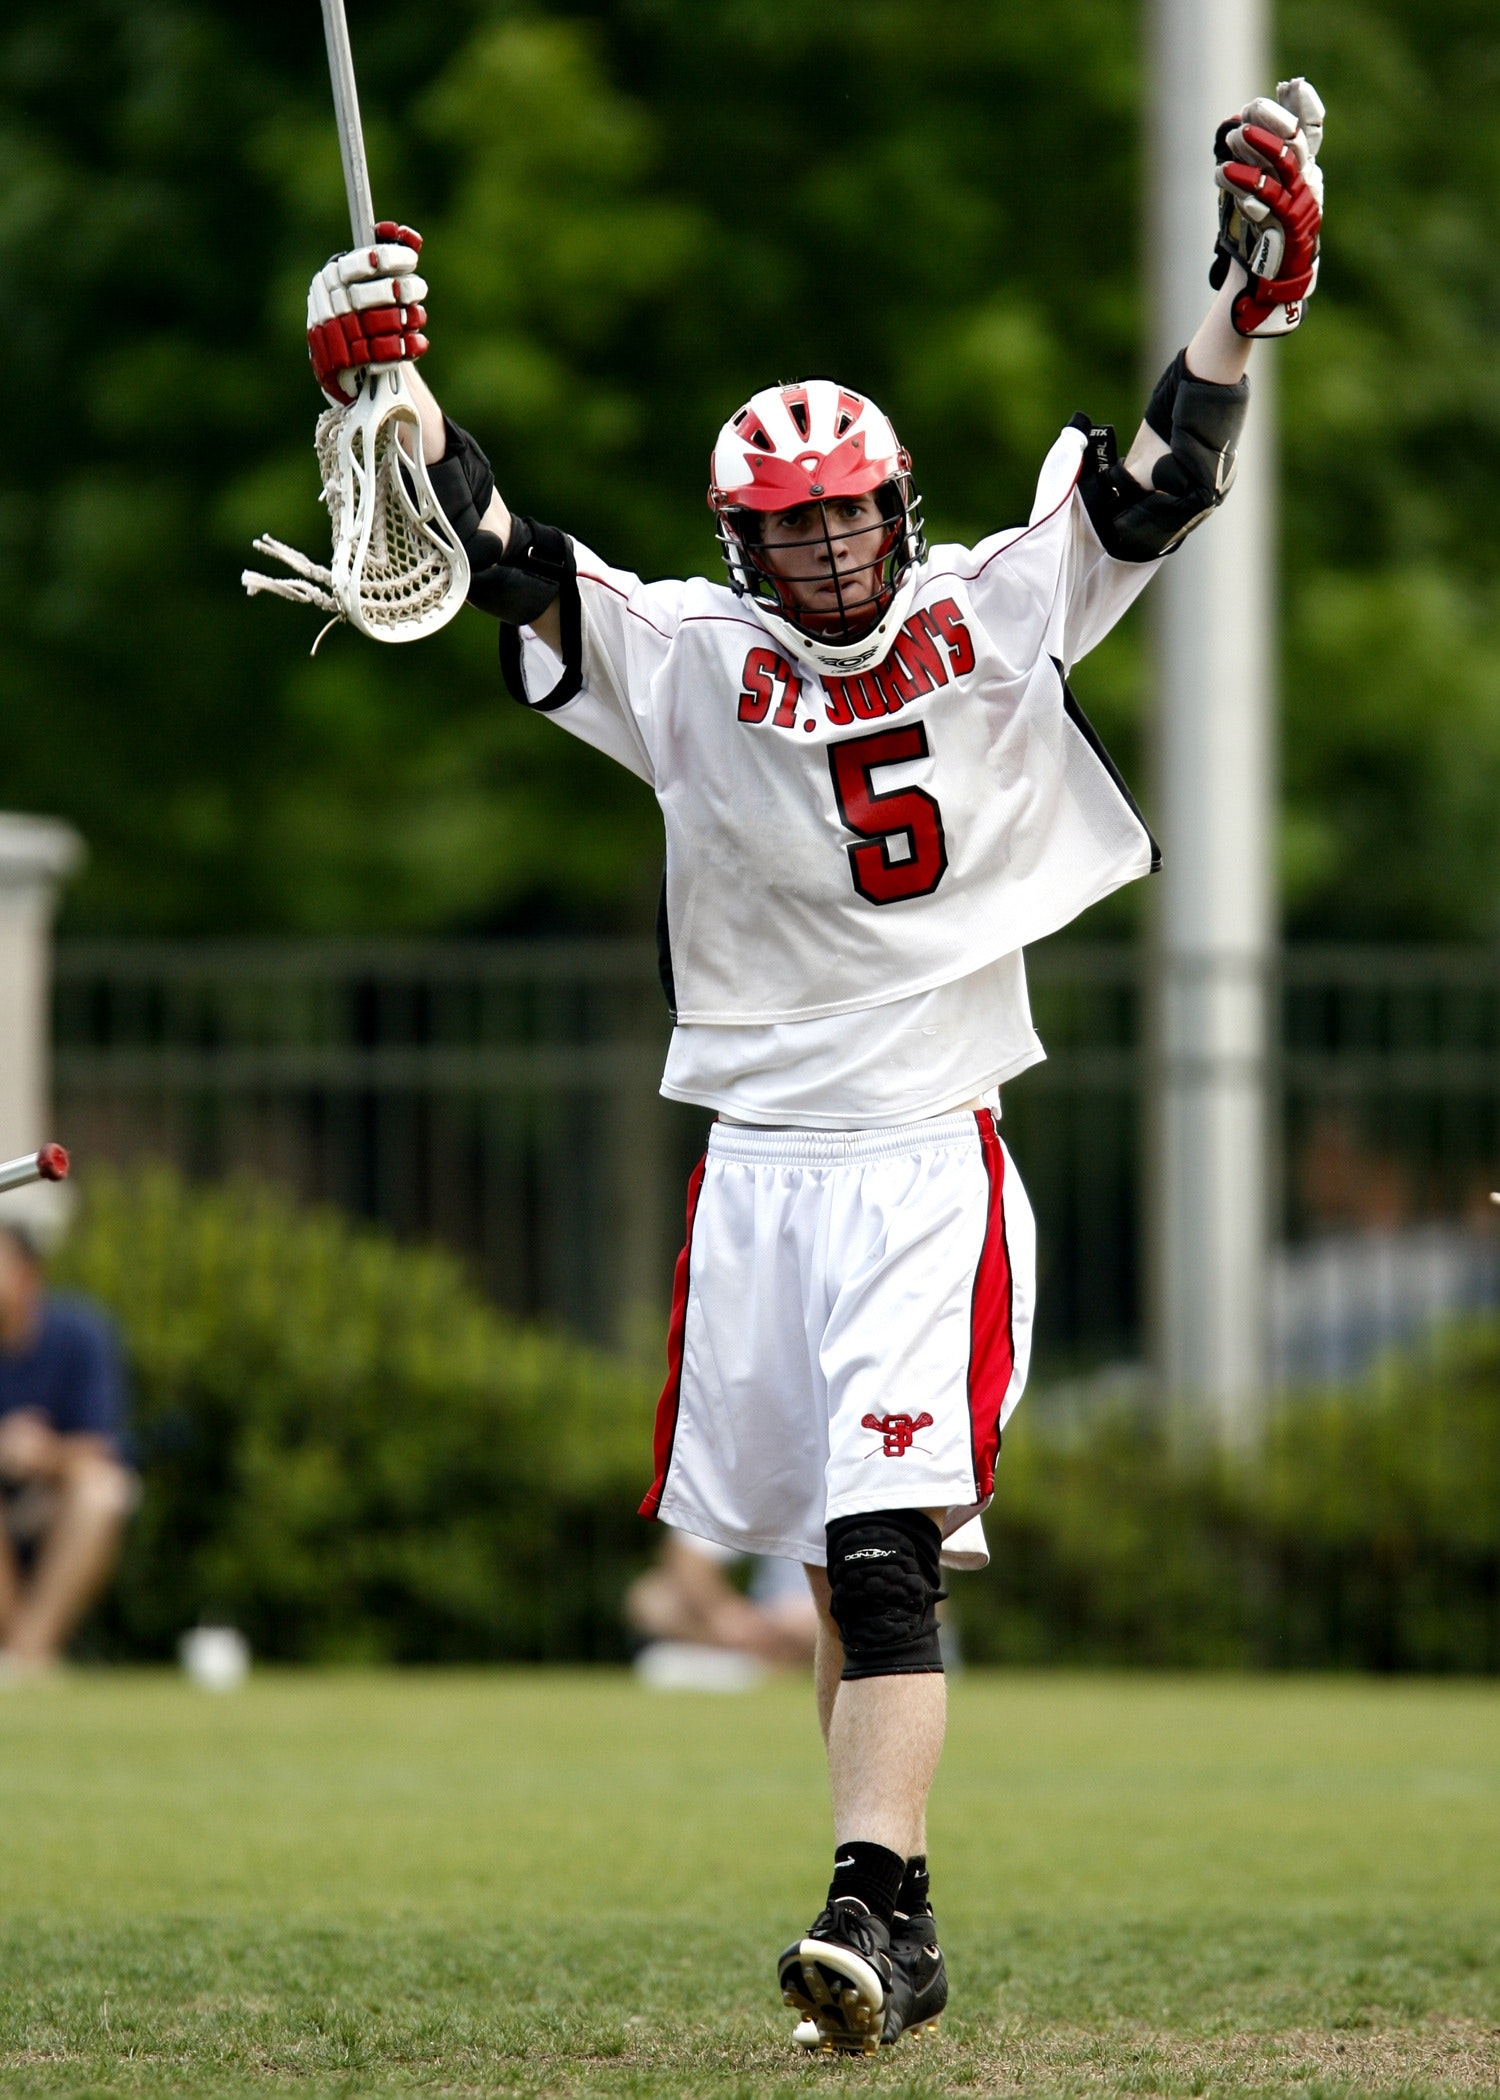 Man Holding White Lacrosse Stick Standing on Green Grass Field during Daytime, Athlete, Field, Fun, Game, HQ Photo